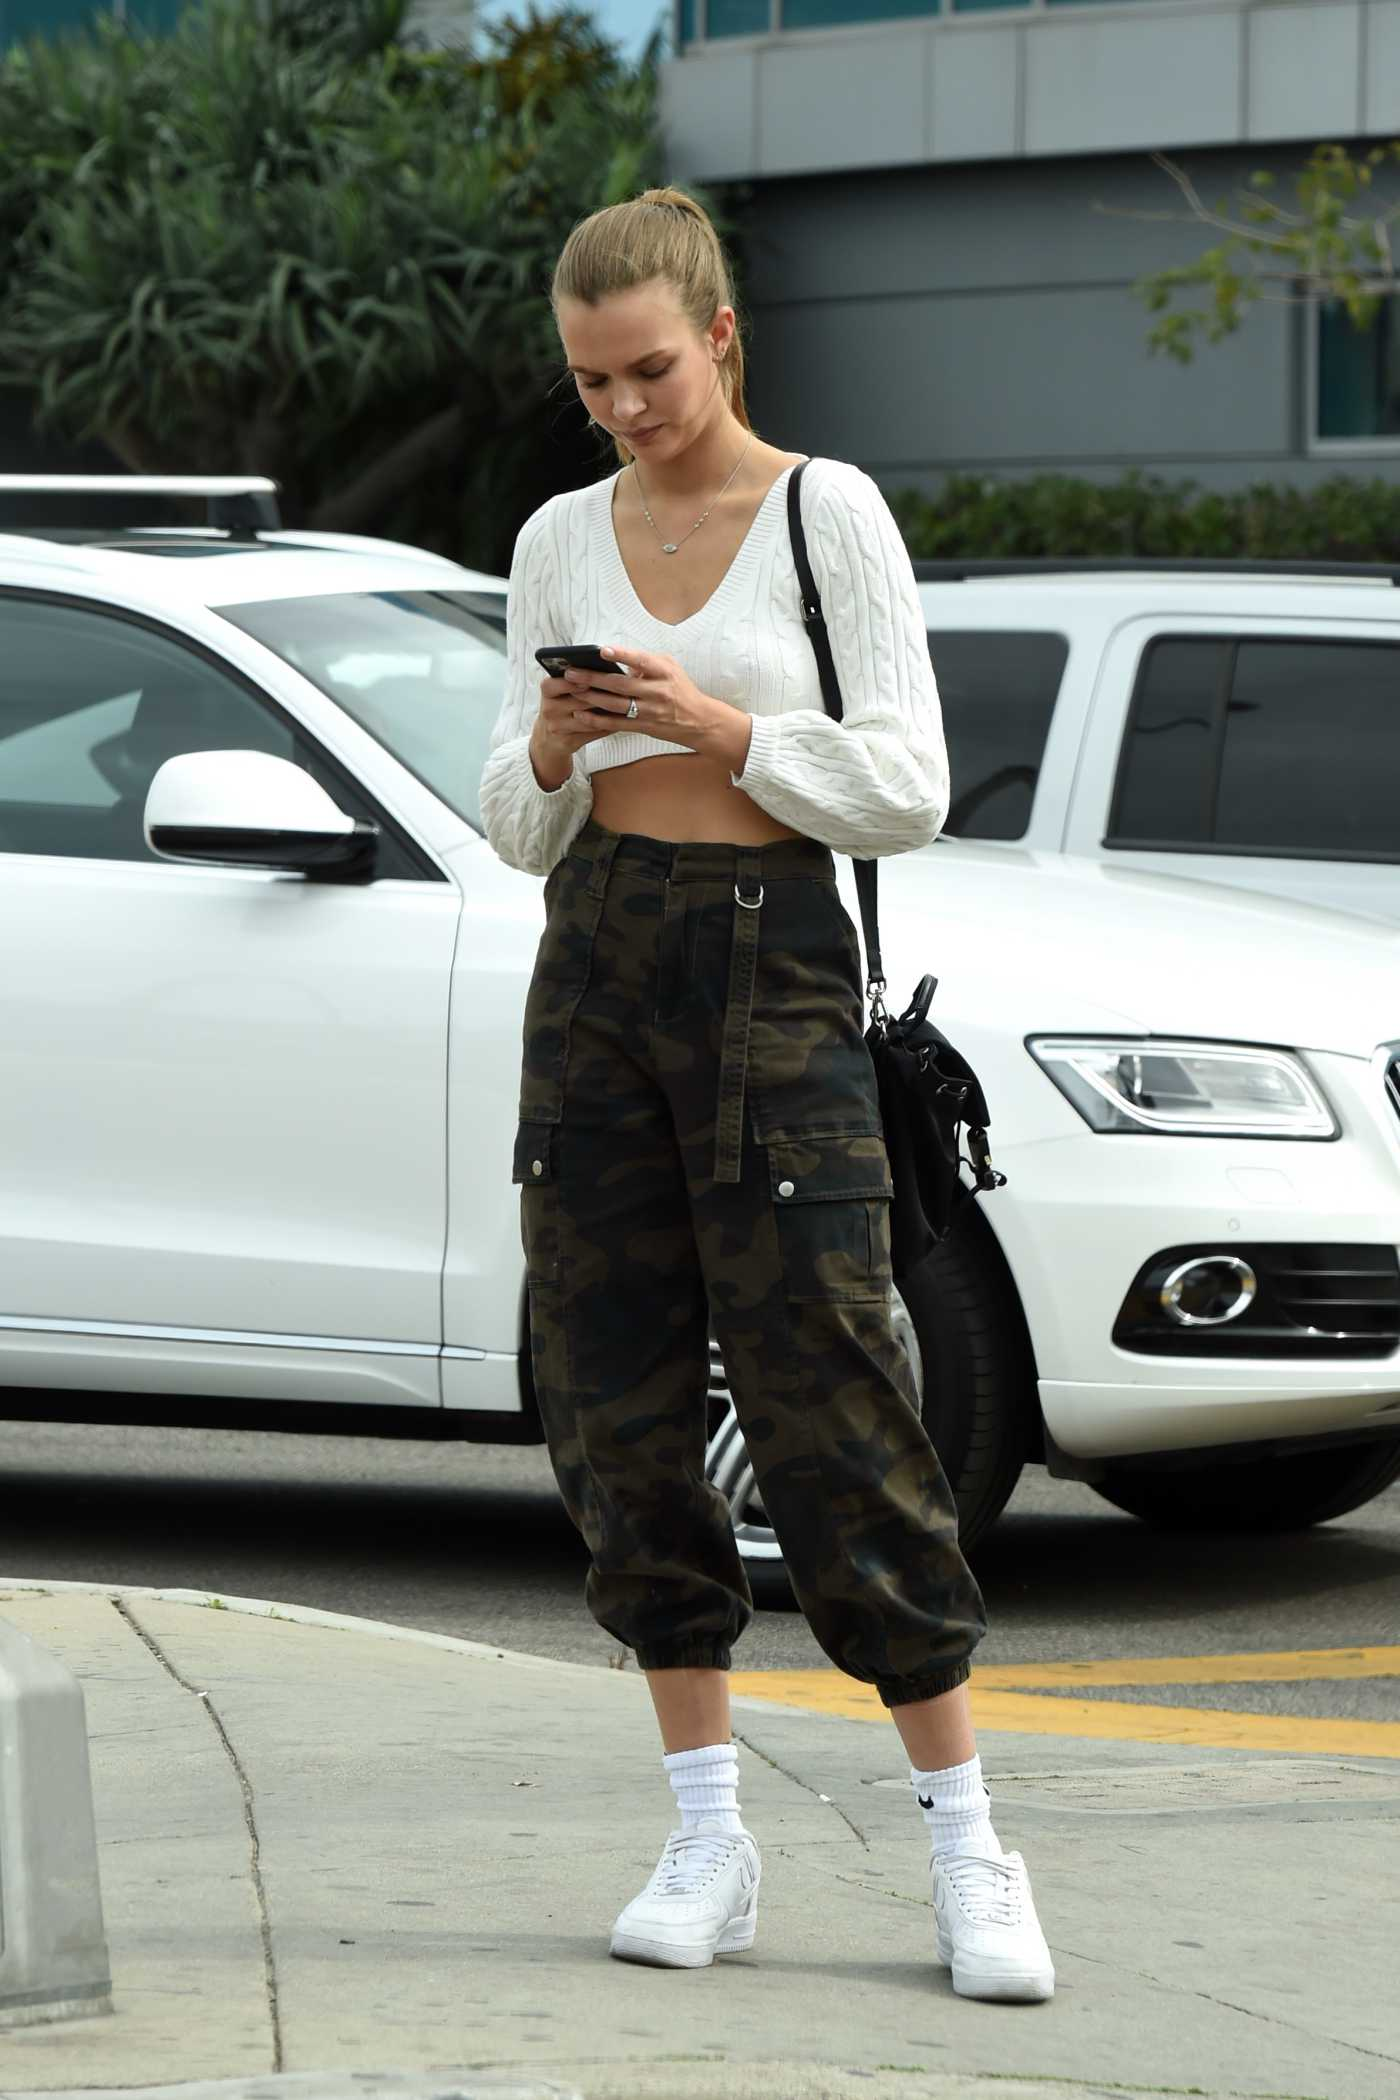 Josephine Skriver in a White Nike Sneakers Was Seen Out in West Hollywood 02/27/2020